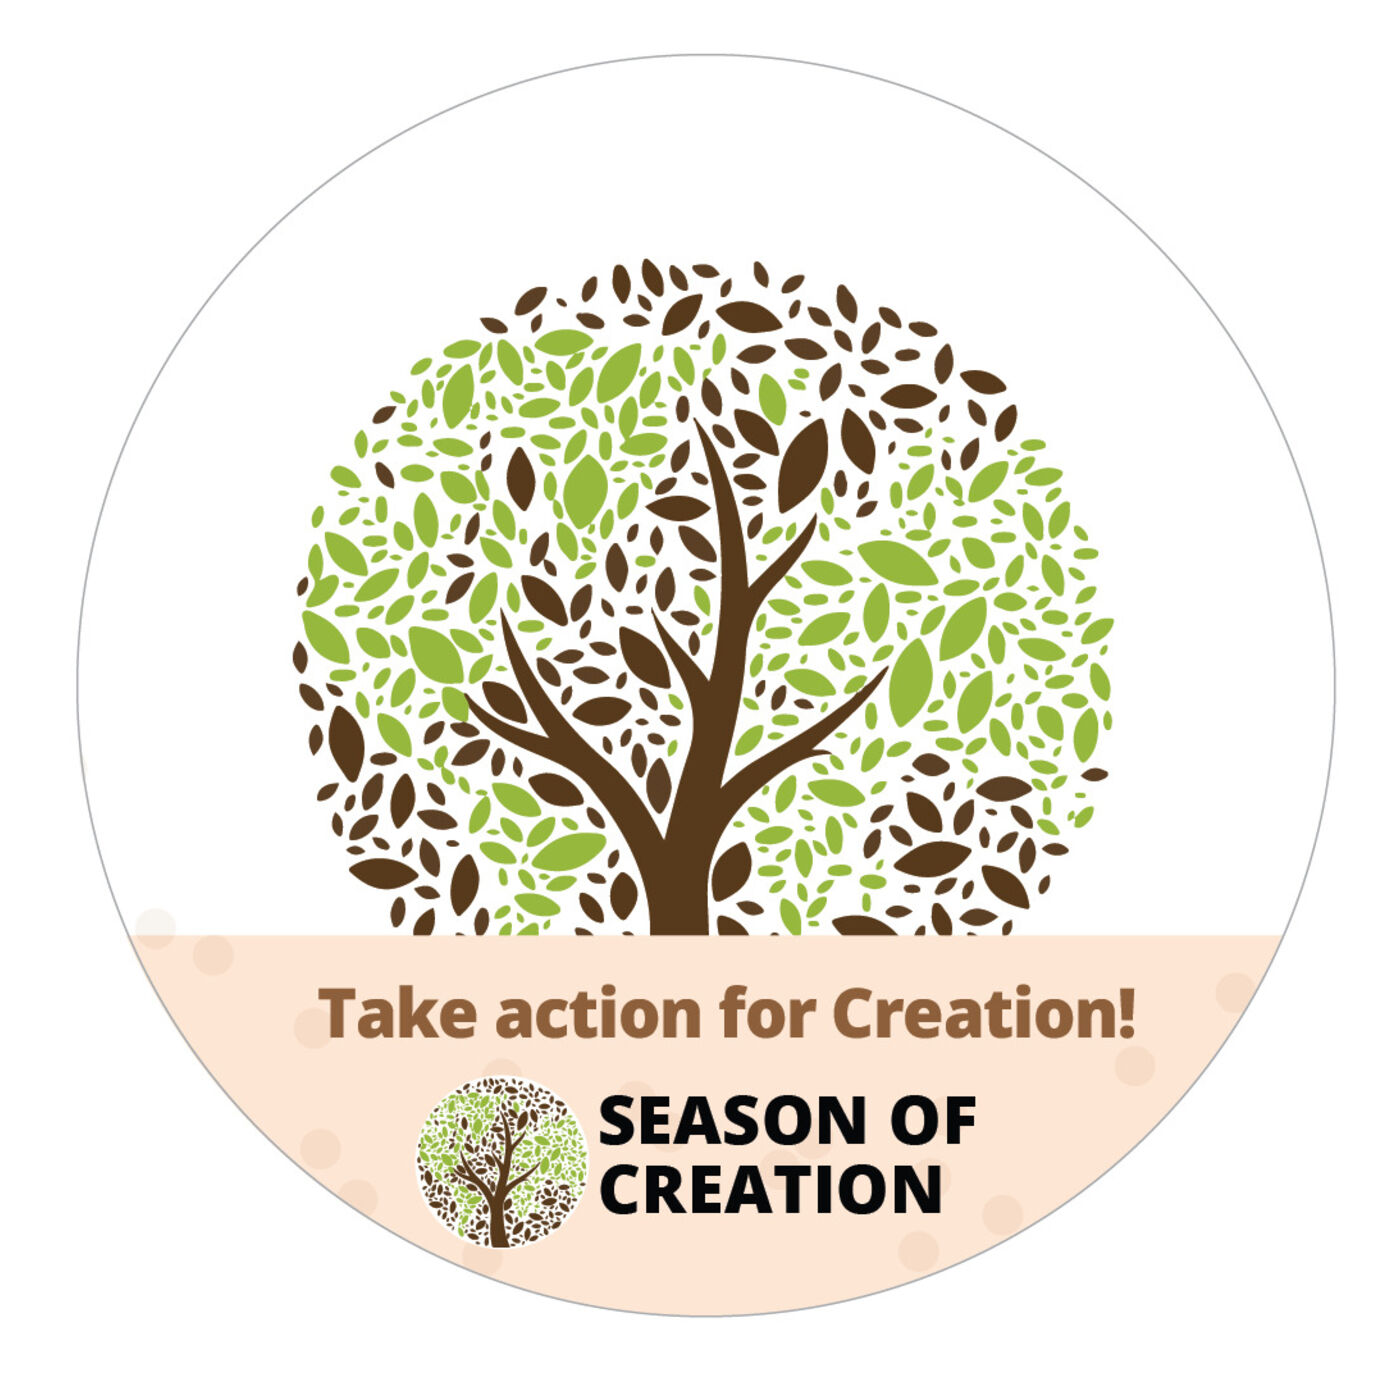 Jesus Our Liberator - Living in Community with All Creation - #SeasonofCreation